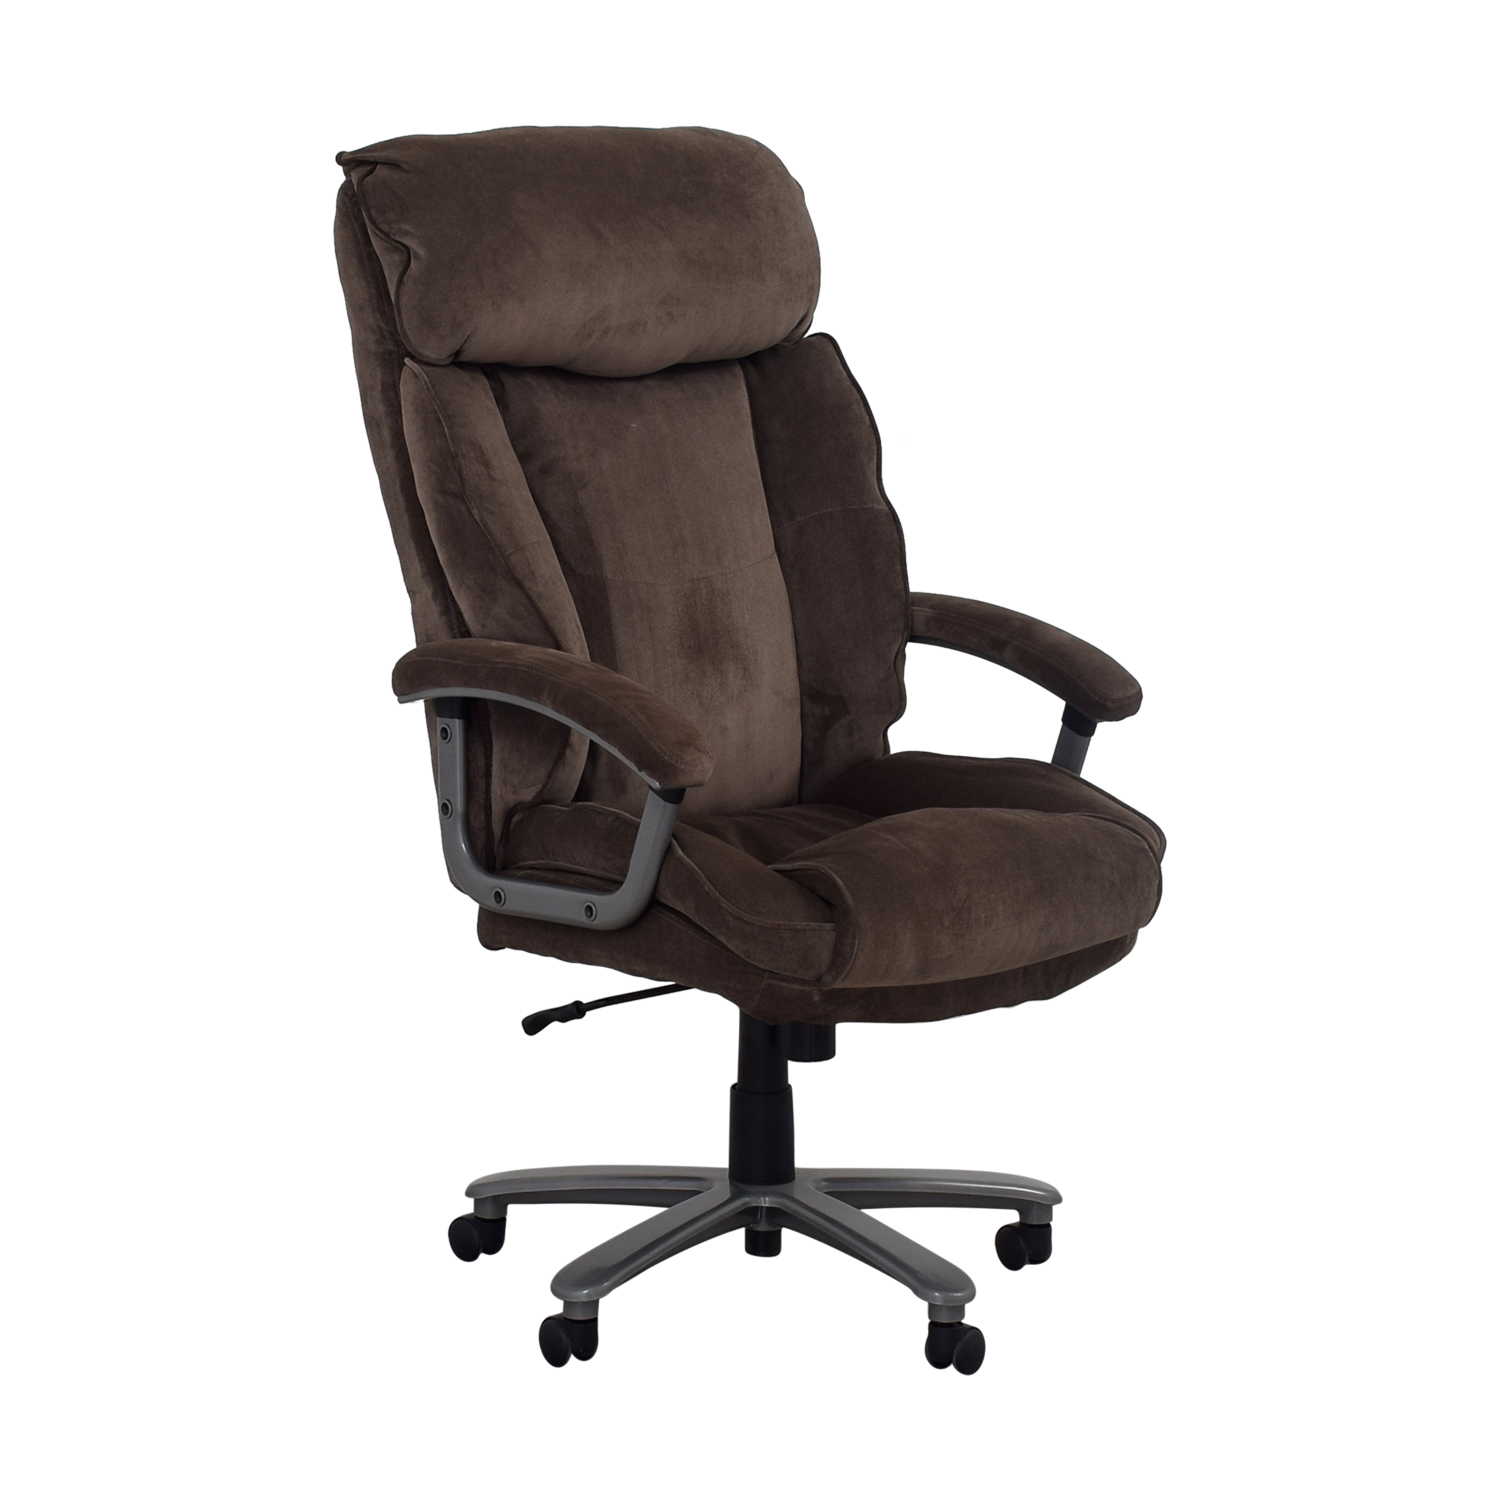 Office Depot Desk Chairs 78 Off Office Depot Office Depot Grey Office Chair Chairs